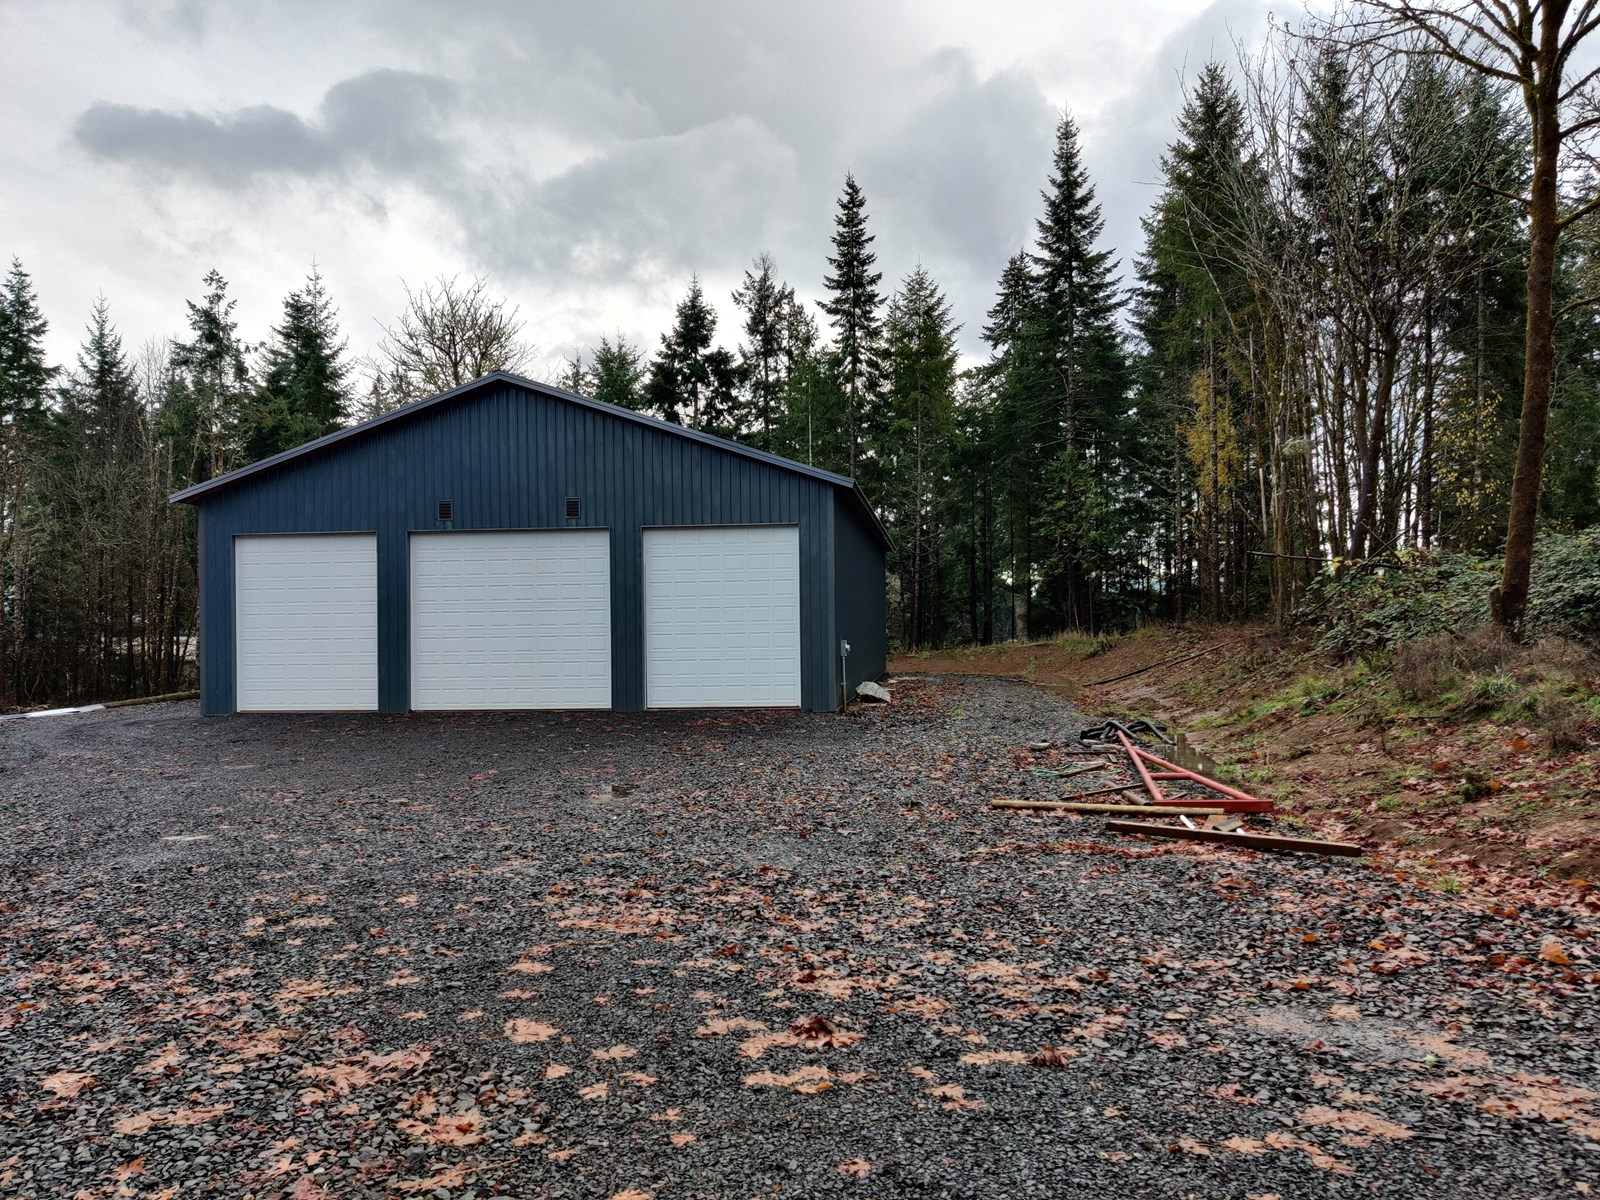 Build Ready Lot with Huge Shop, power, water near Chehalis